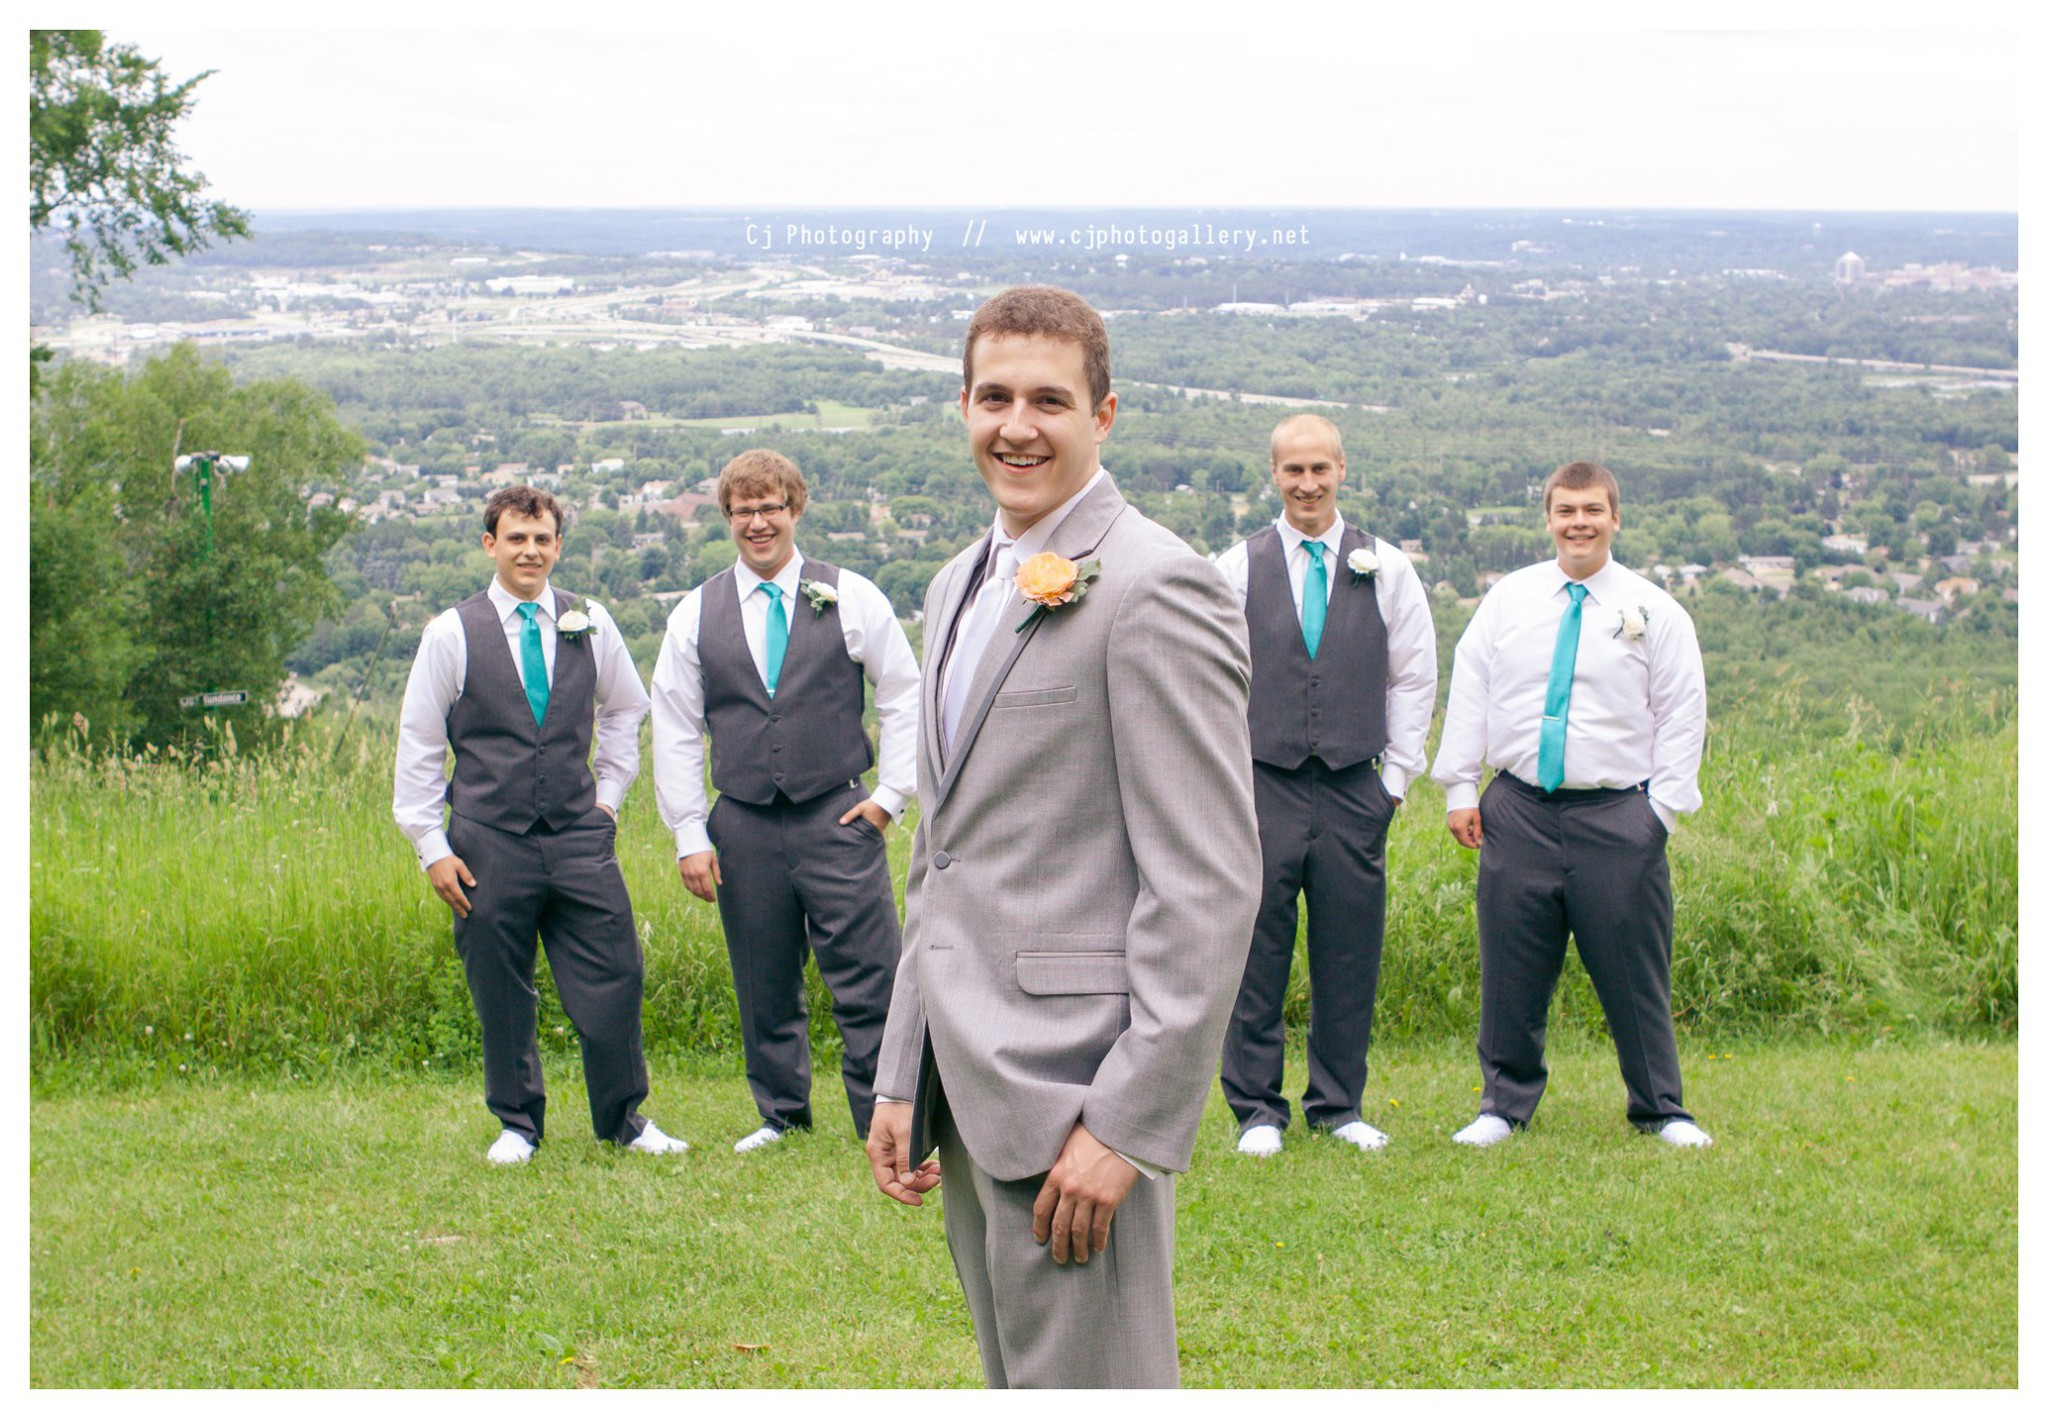 Wausau Wisconsin Wedding Photography - Cj Photography